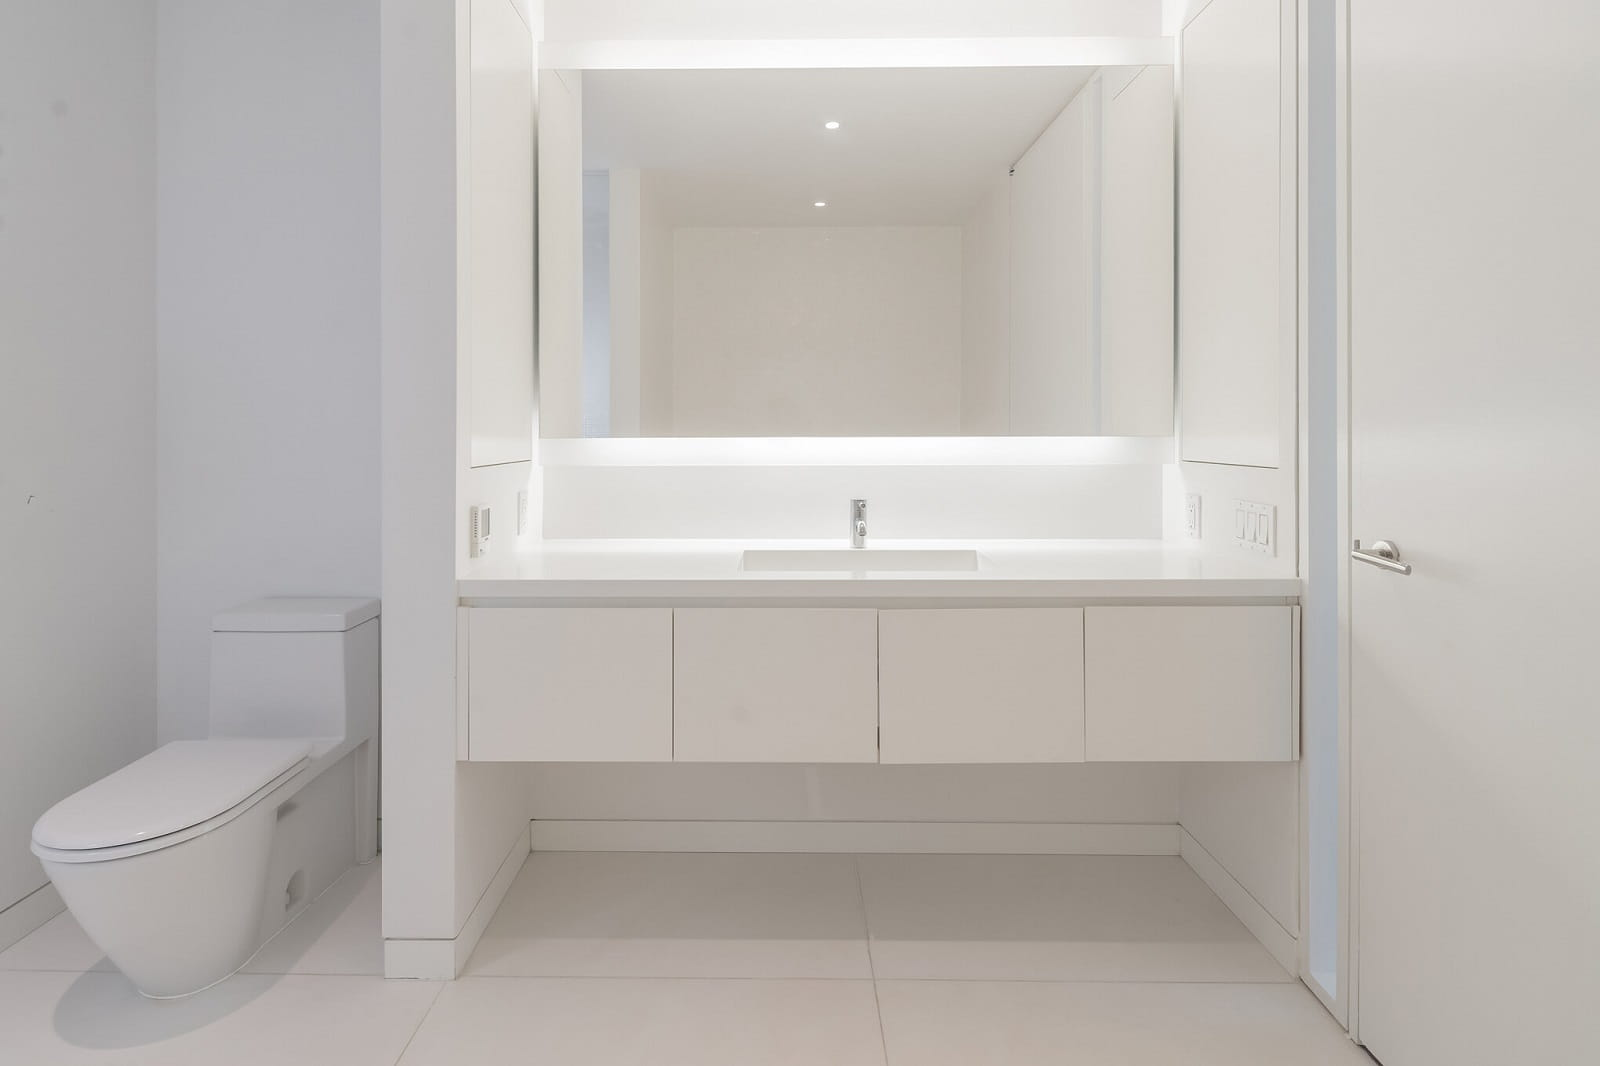 Real Estate Photography in Brooklyn - NY - USA - Bathroom View